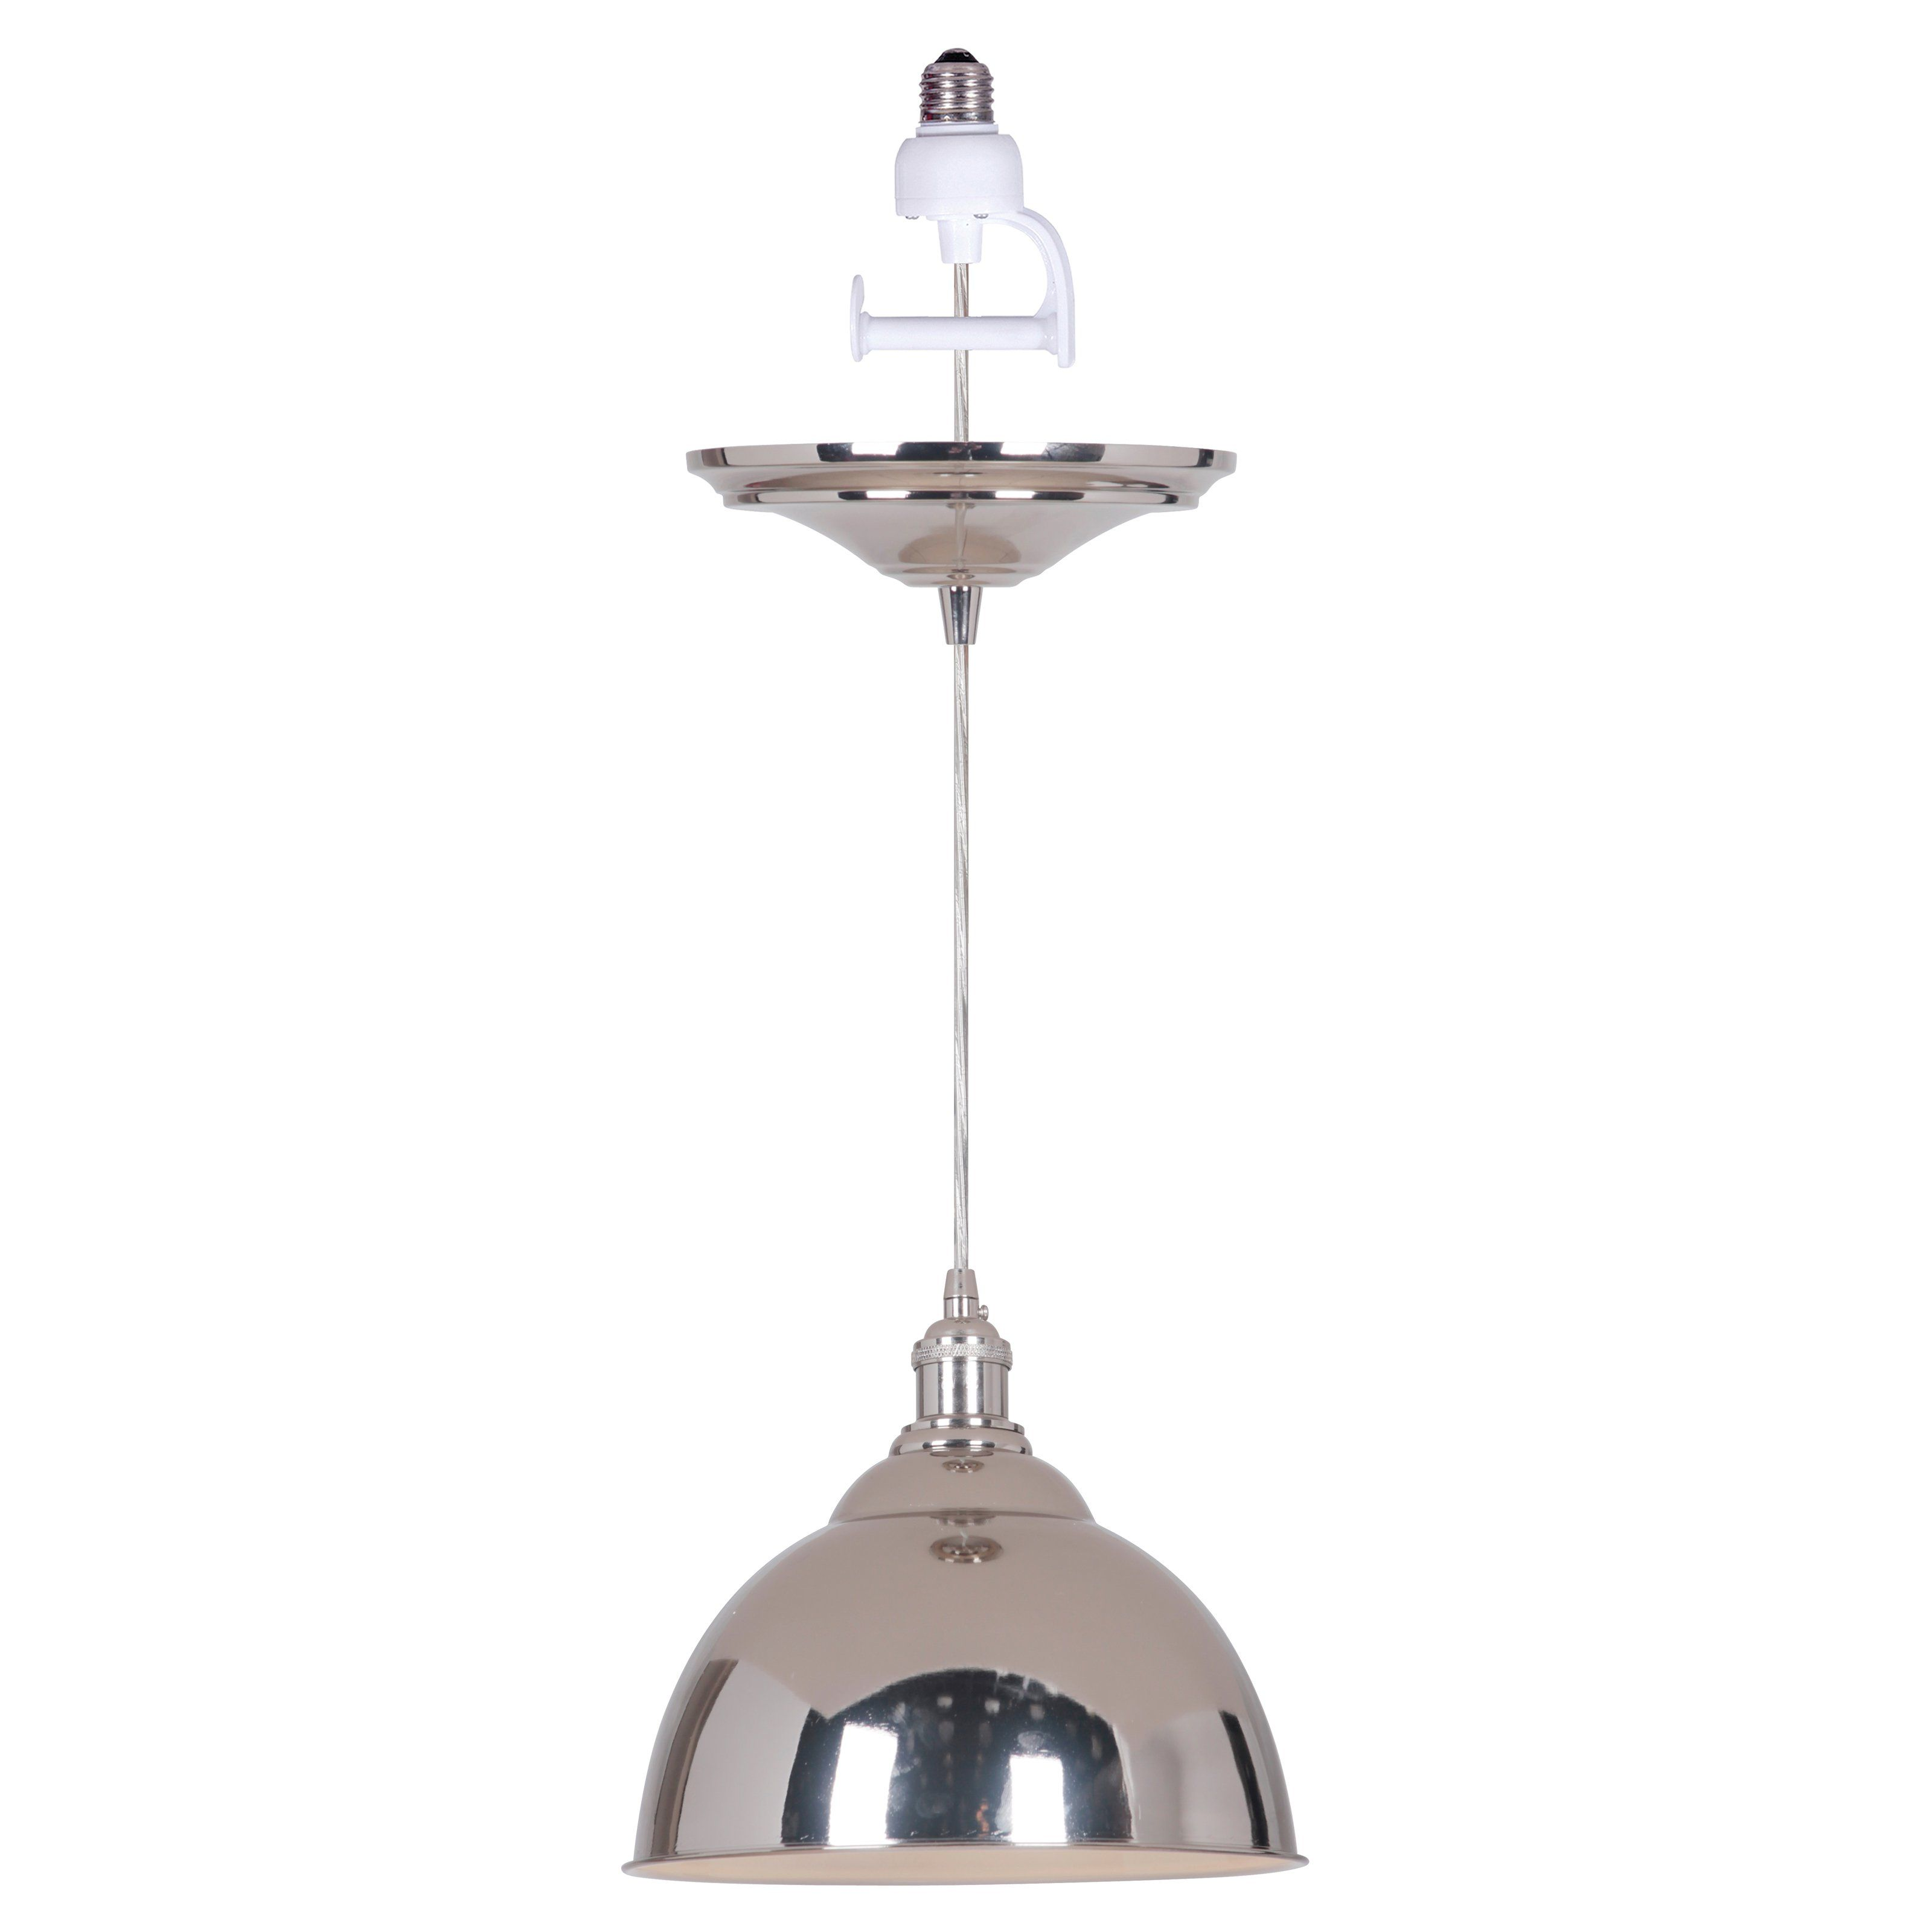 Instant pendant lighting large size of pendant lights preferable instant pendant lighting worth home products instant pendant light conversion kit in p polished nickel aloadofball Gallery